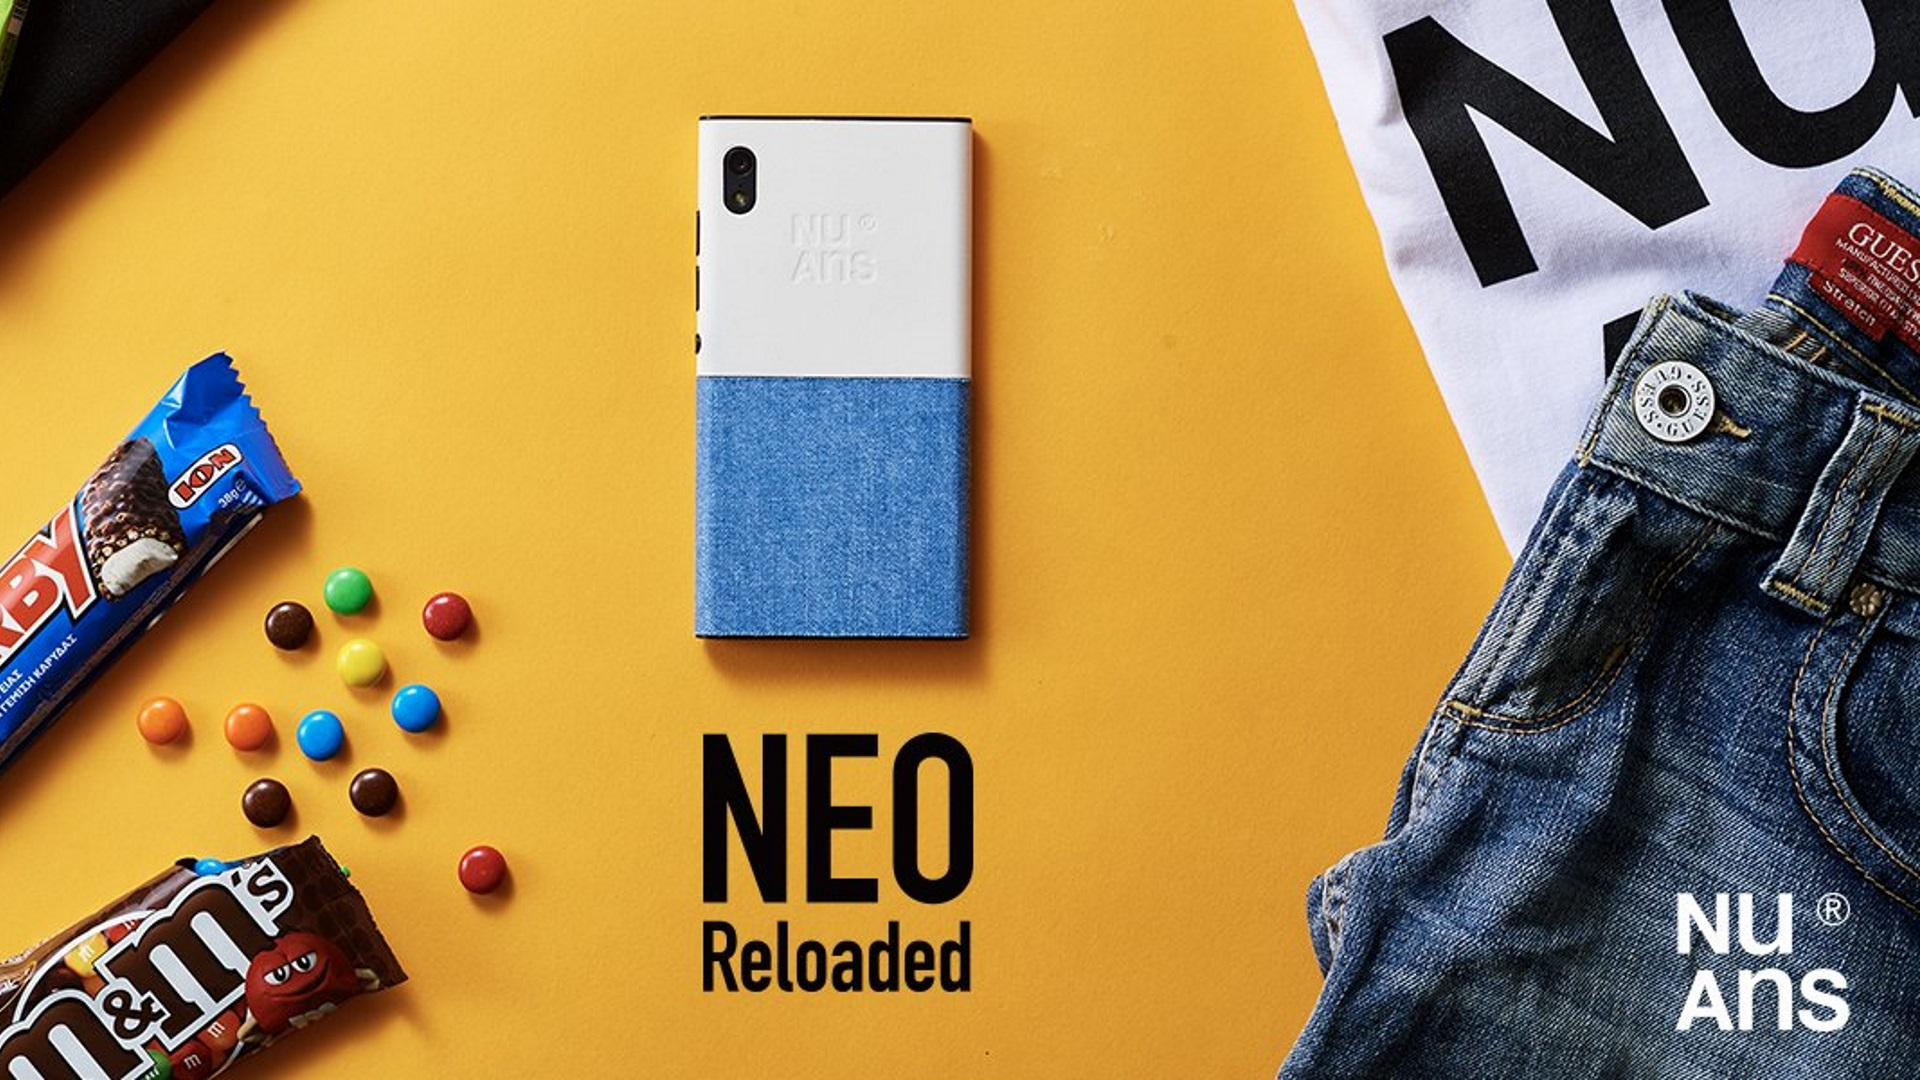 「NuAns NEO [Reloaded]」にAndroid 7.1.2アップデートが配信開始